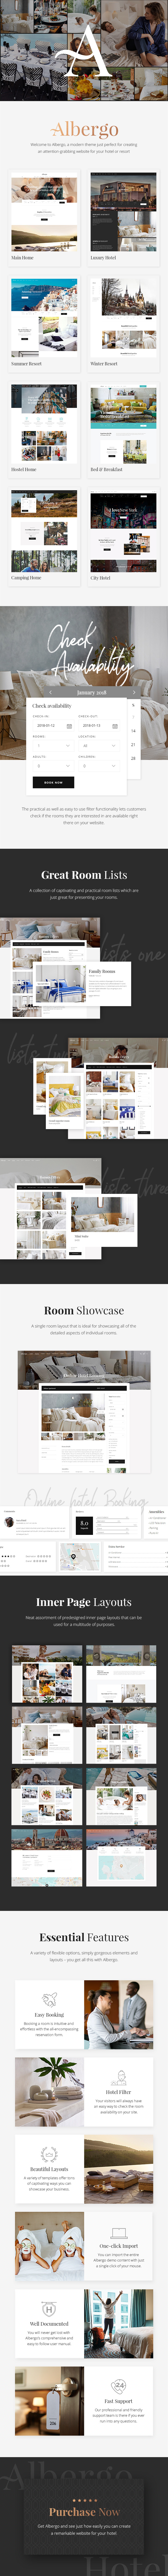 WordPress theme Albergo - A Modern Hotel and Accommodation Booking Theme (Travel)